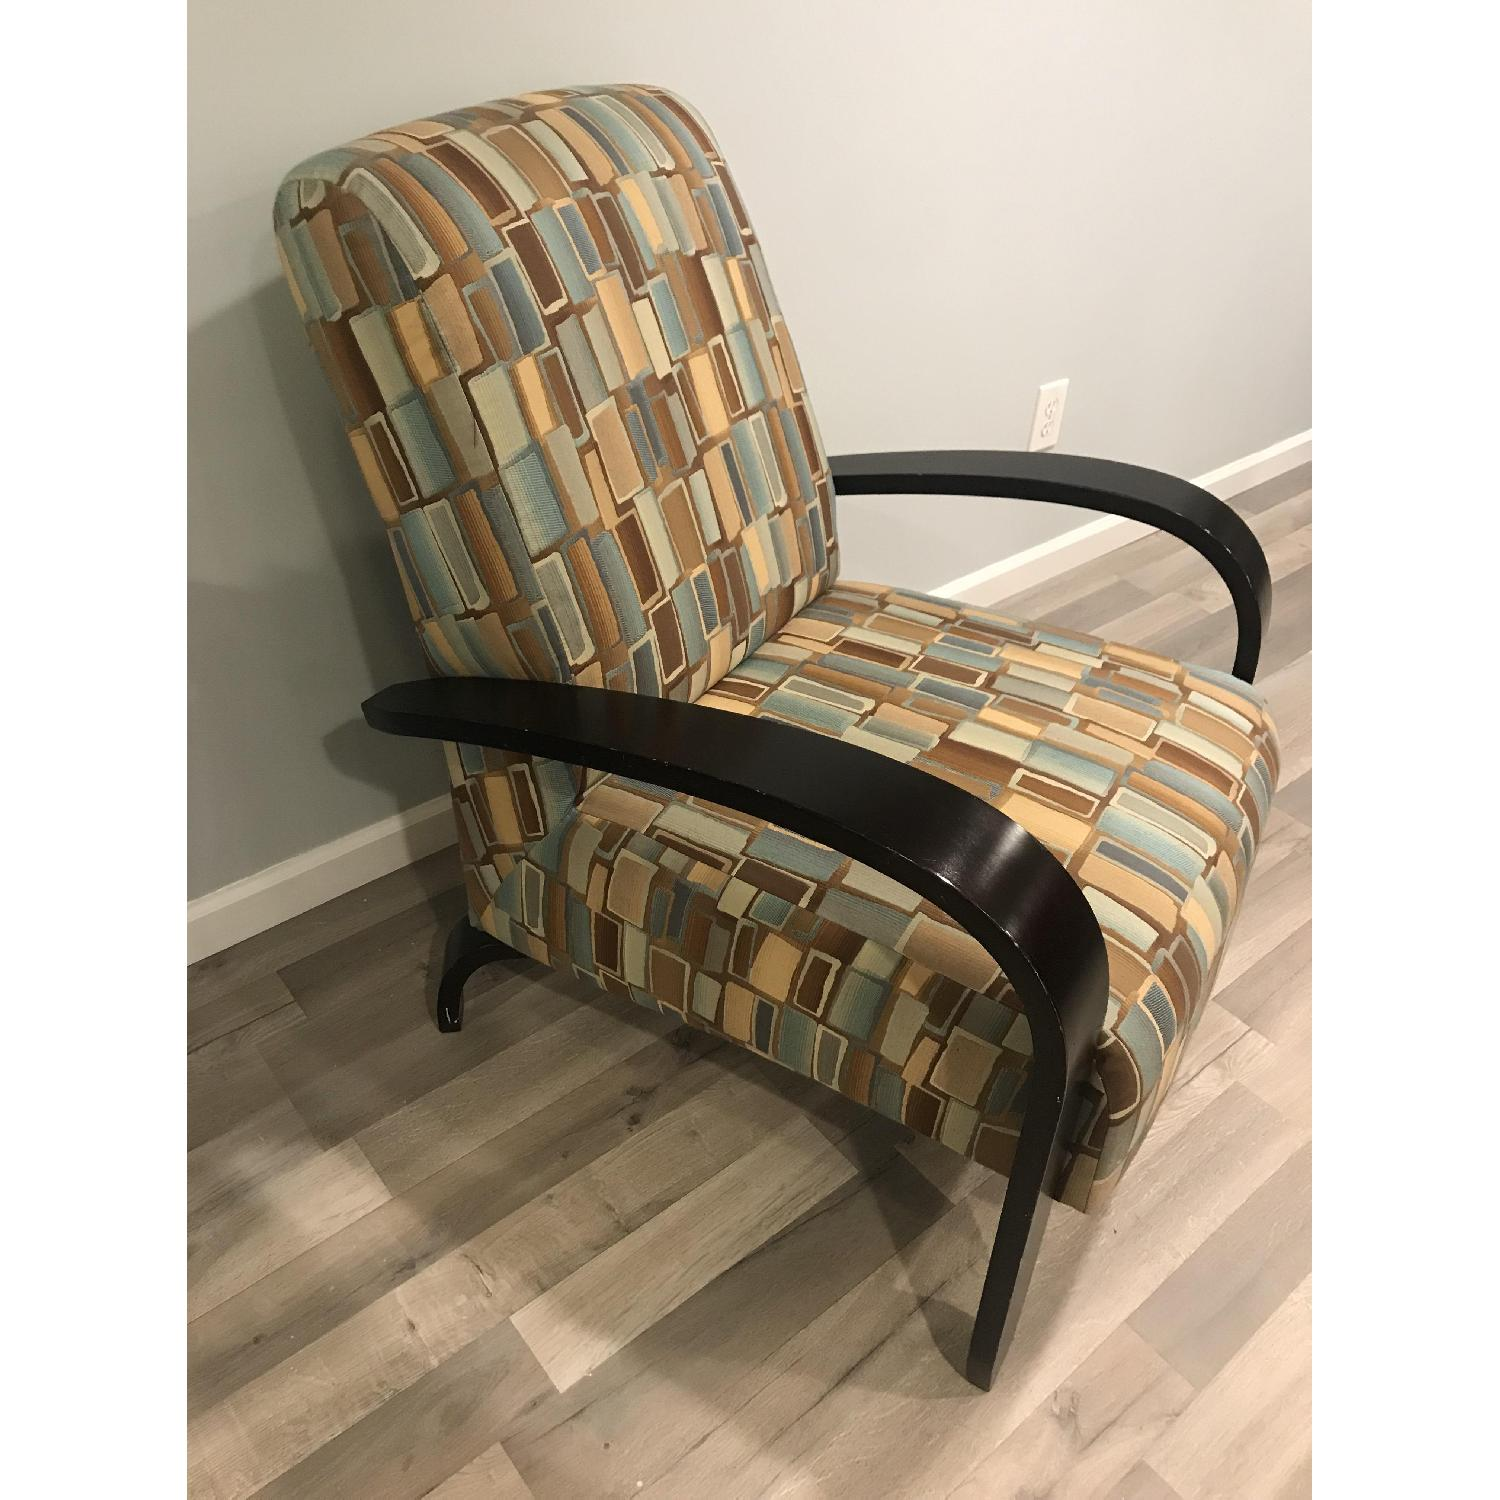 Wood & Fabric Upholstered Chairs - image-2